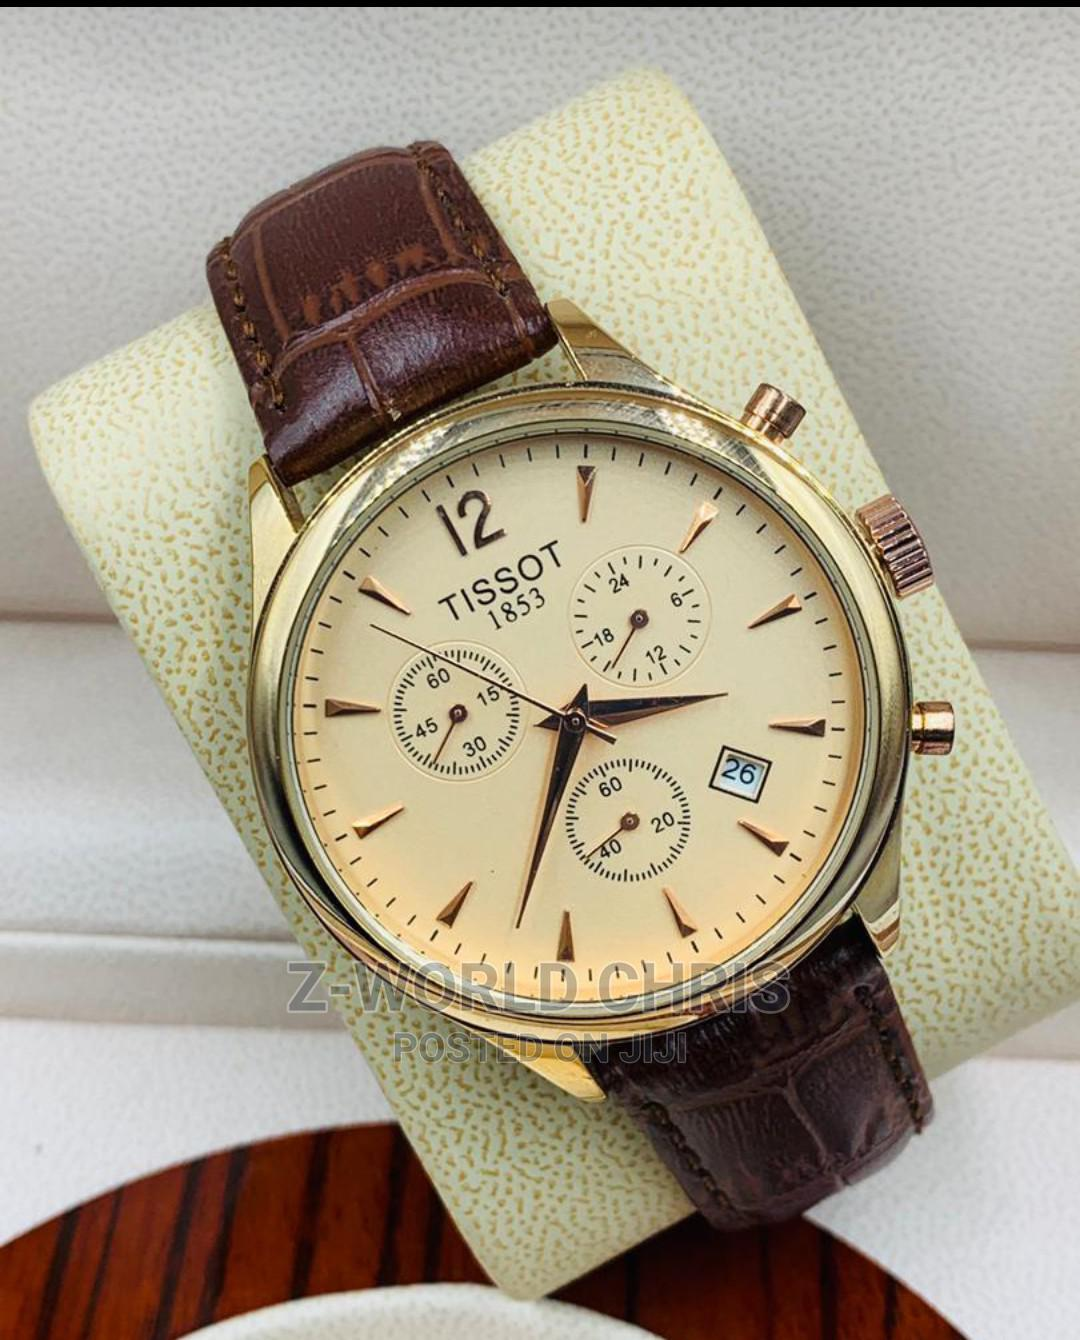 Tissot Men's Brown Leather Wristwatch   Watches for sale in Surulere, Lagos State, Nigeria